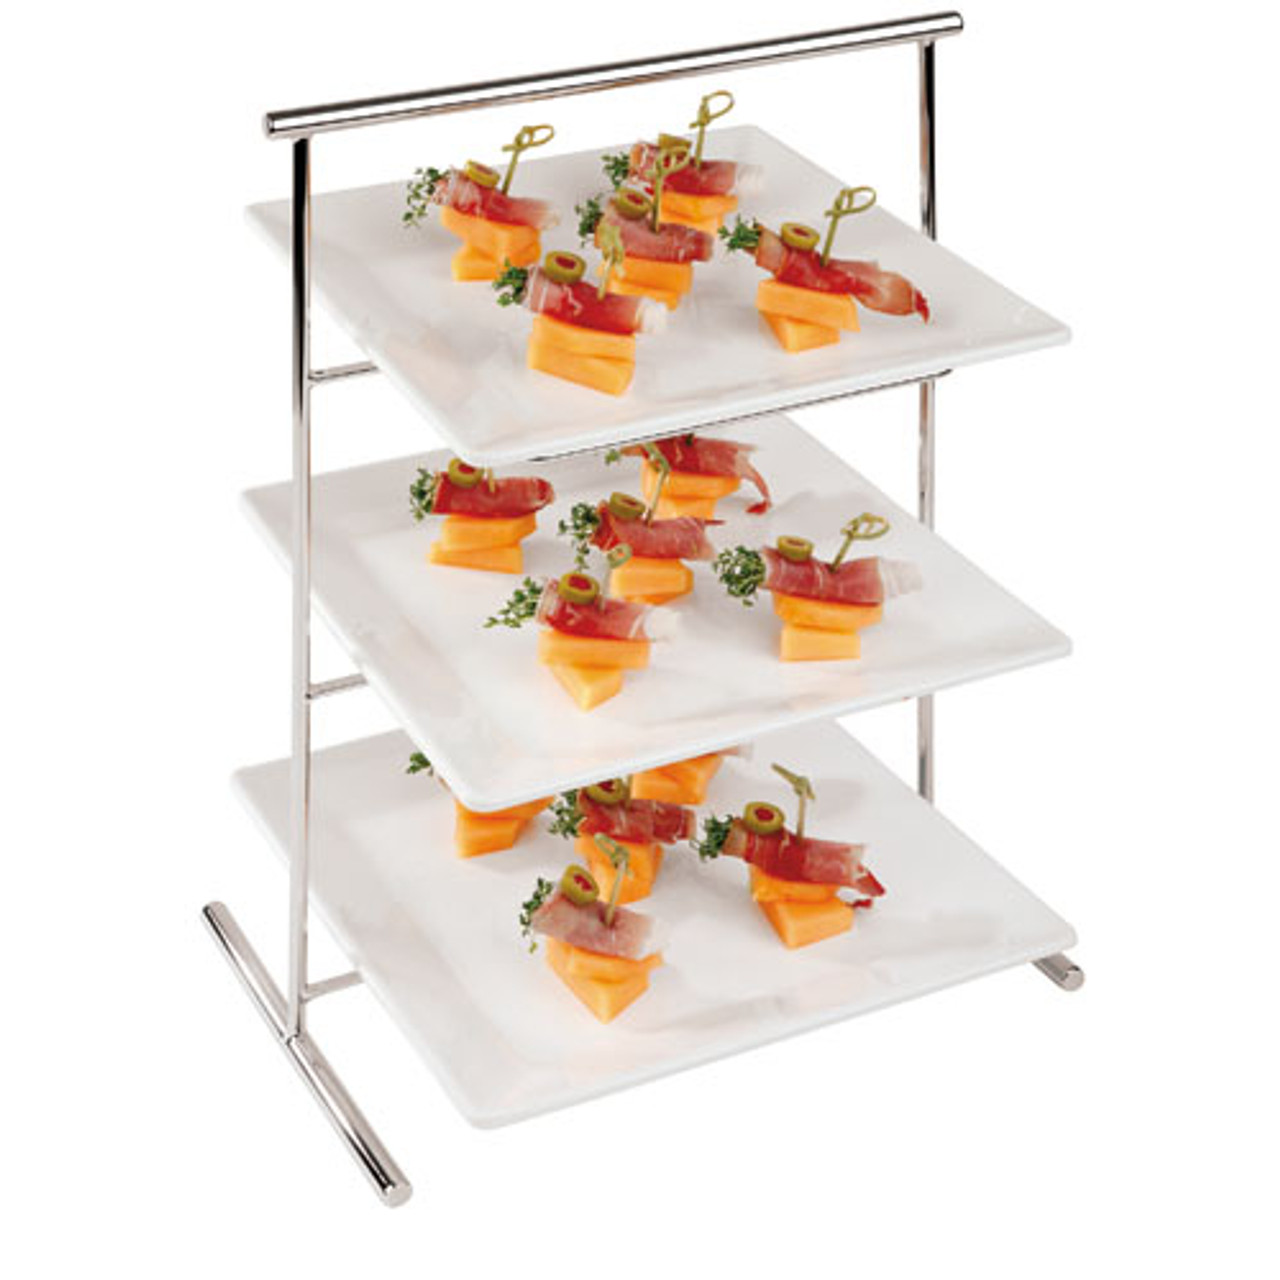 Three-tier Chromed Steel Stand - 13 x 8 1/4, L 13 x W 8.25 x H 17.375